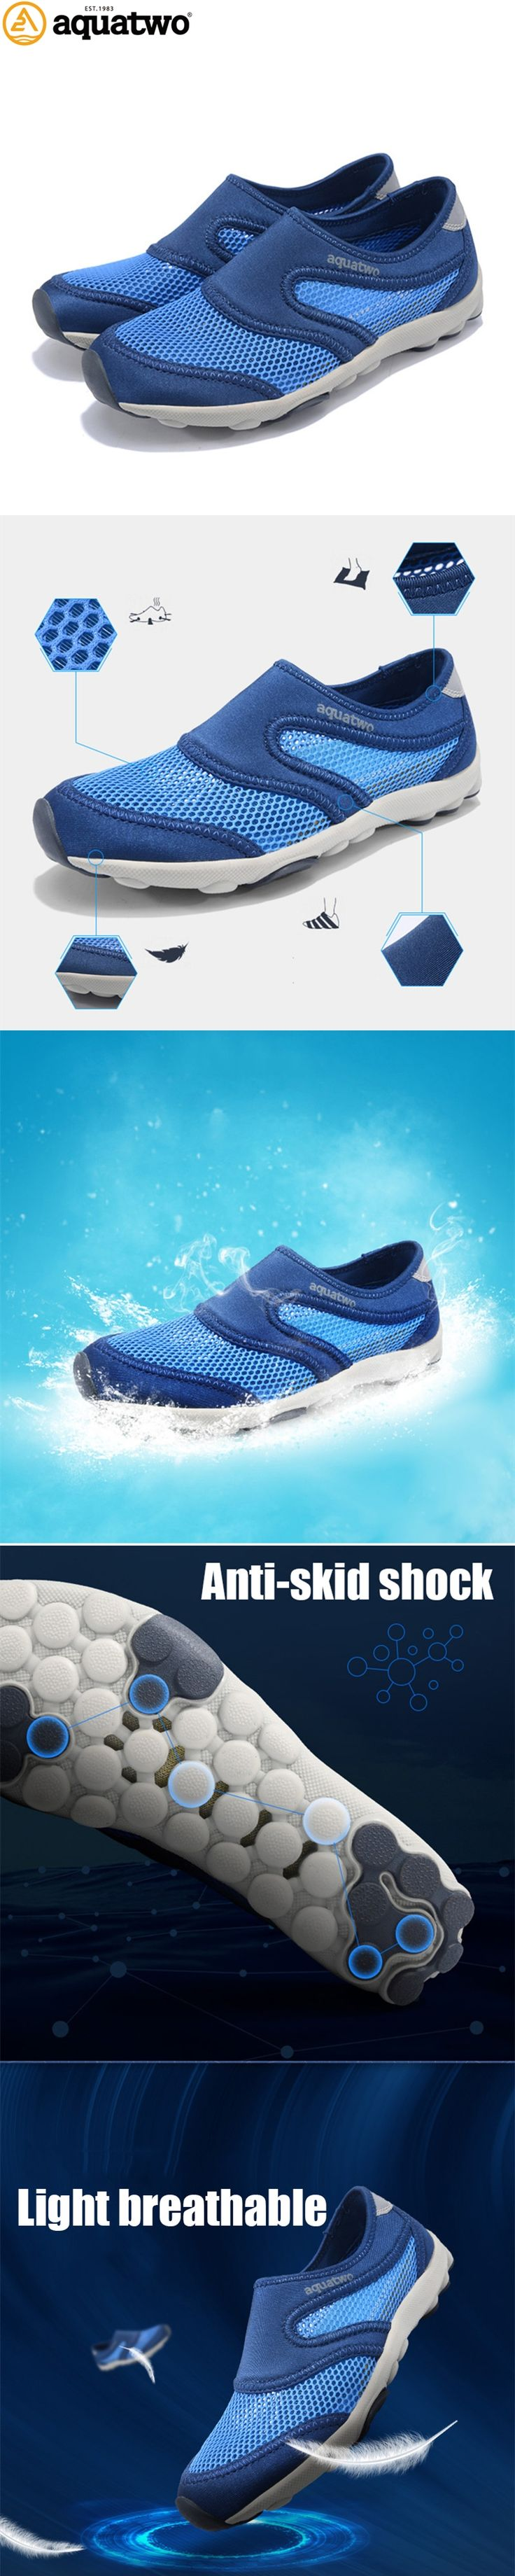 AQUA TWO Men Upstream Shoes Sandal Air Mesh Summer Walking Water Shoes Outdoor Shoes For Beach Wading Shoes HDS-102503